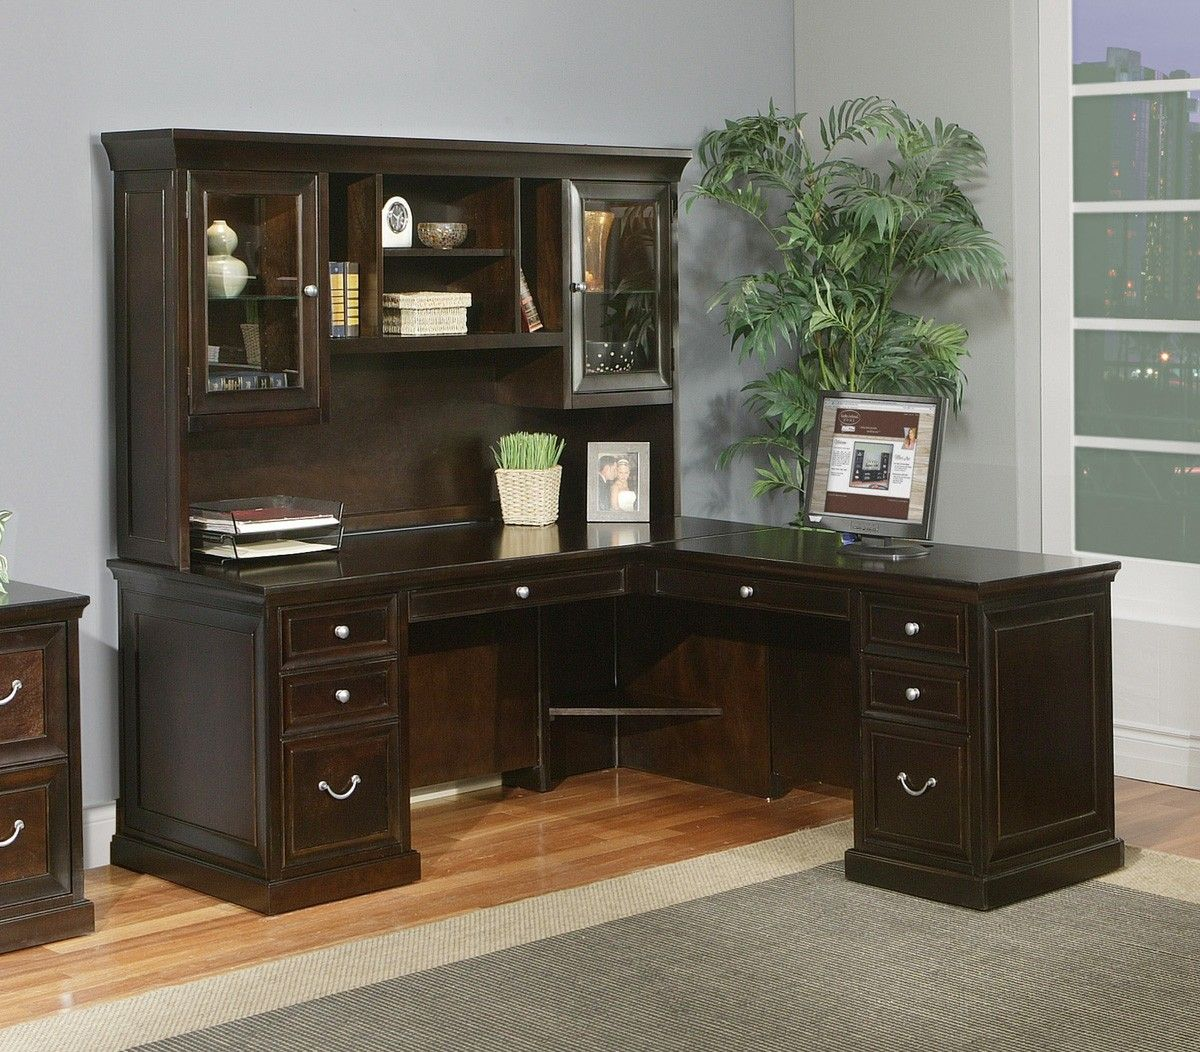 Kathy Ireland Home By Martin Fulton RHF L Shaped Executive Desk With Hutch  In Espresso     Lowest Price Online On All Kathy Ireland Home By Martin  Fulton ...